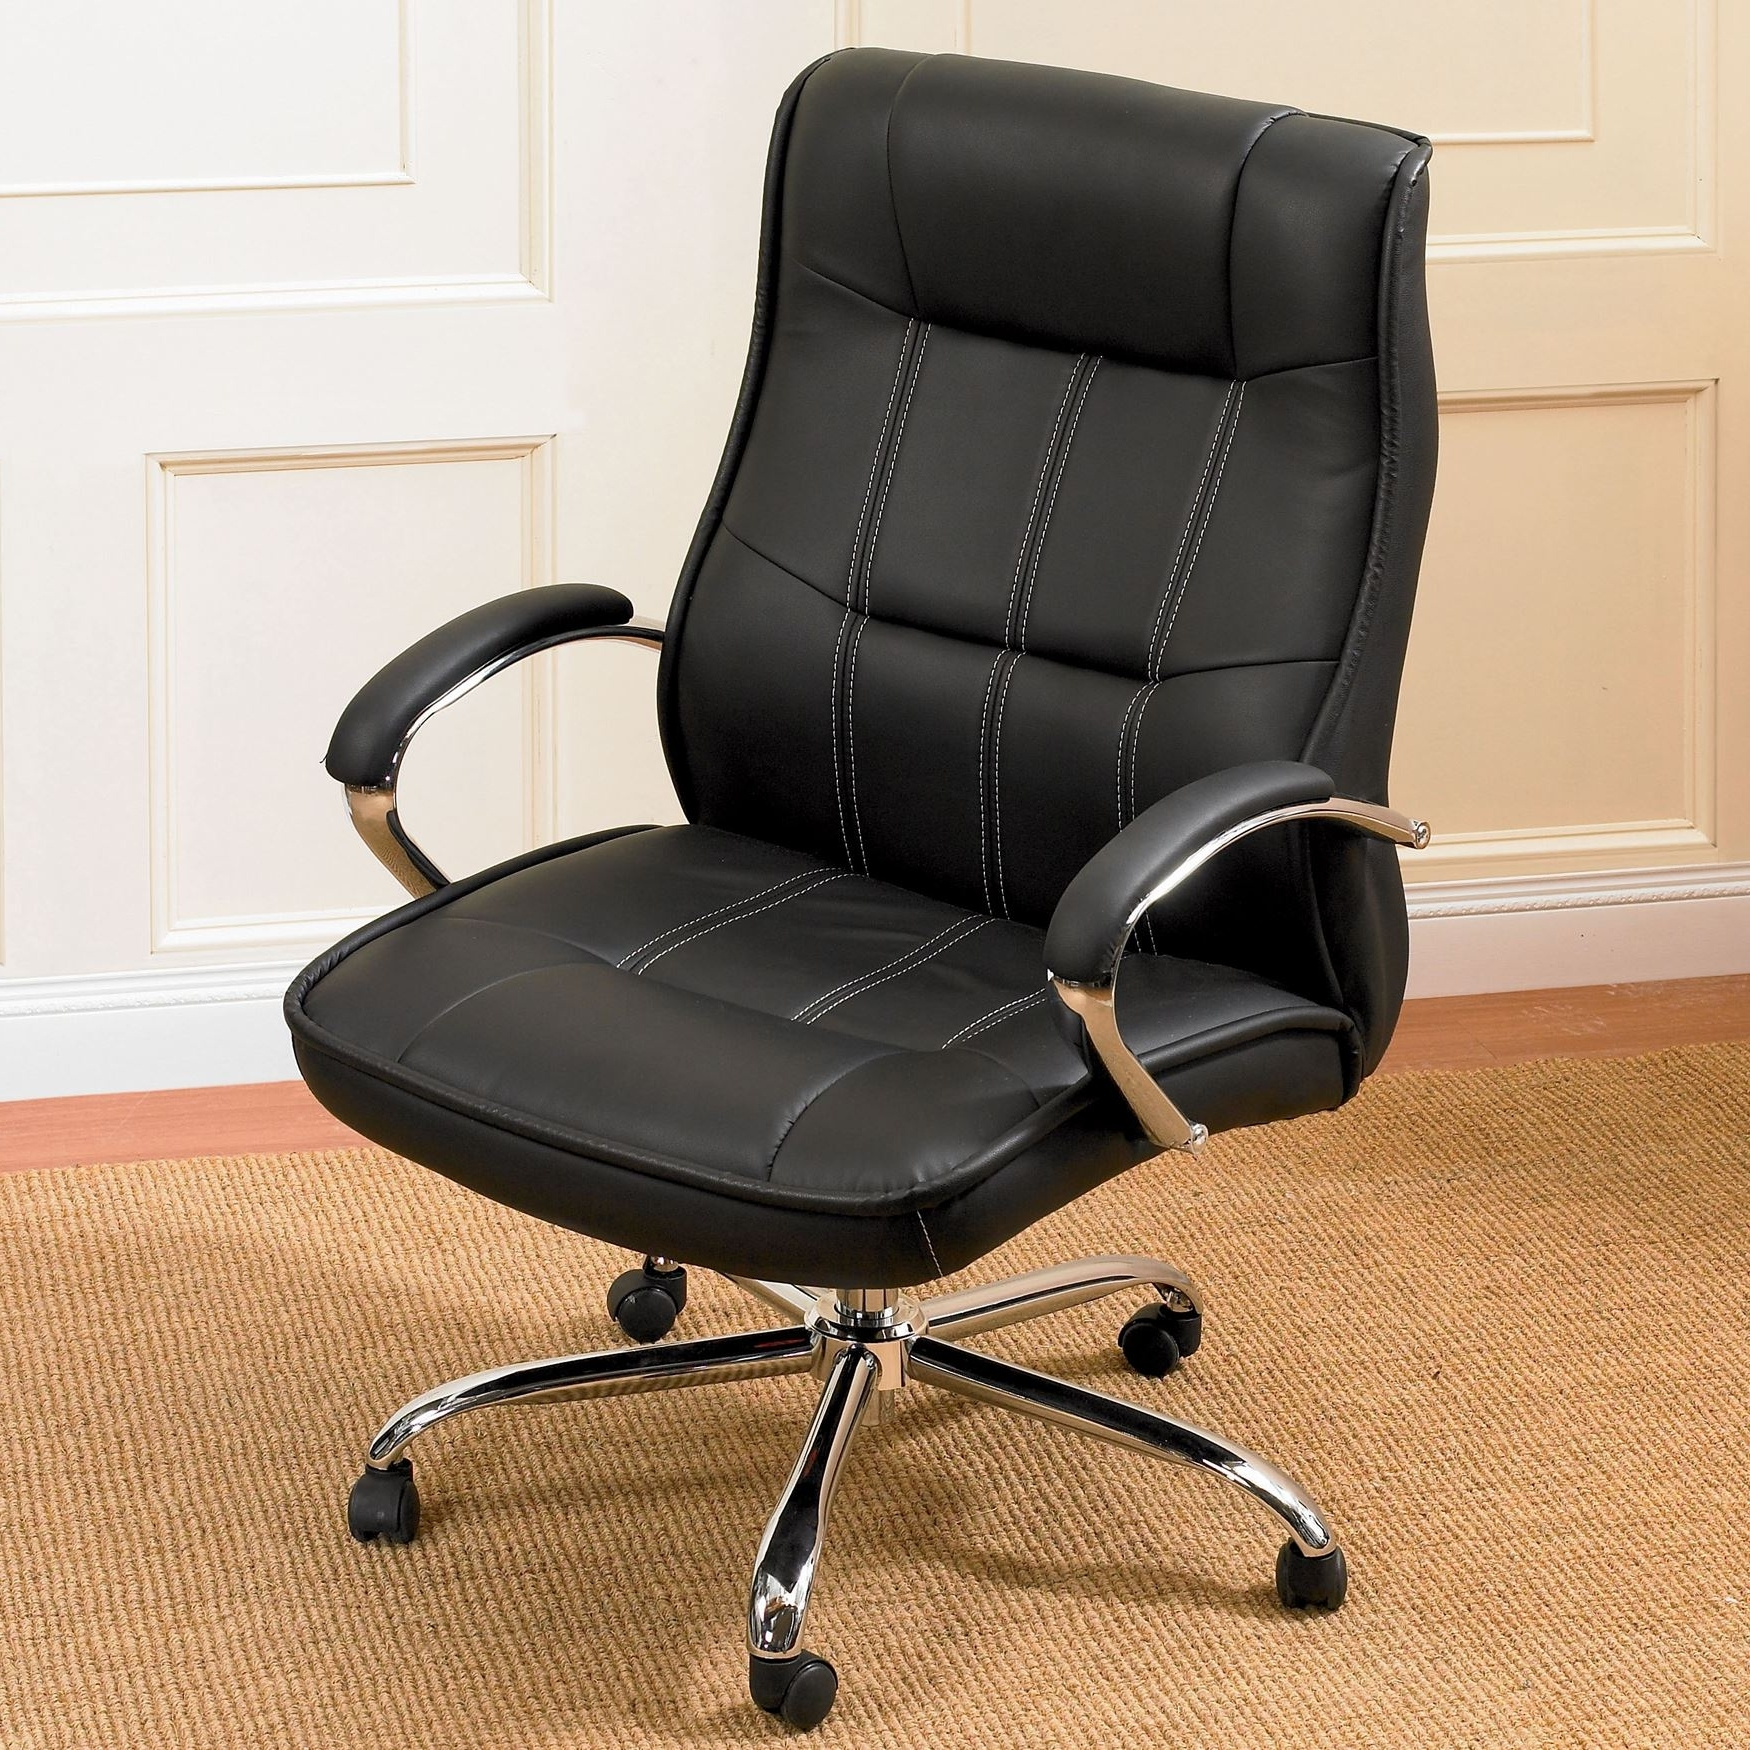 Plus Size Extra Large Office Chairs Brylane Home – Tritoo With Regard To Latest Oversized Executive Office Chairs (View 18 of 20)